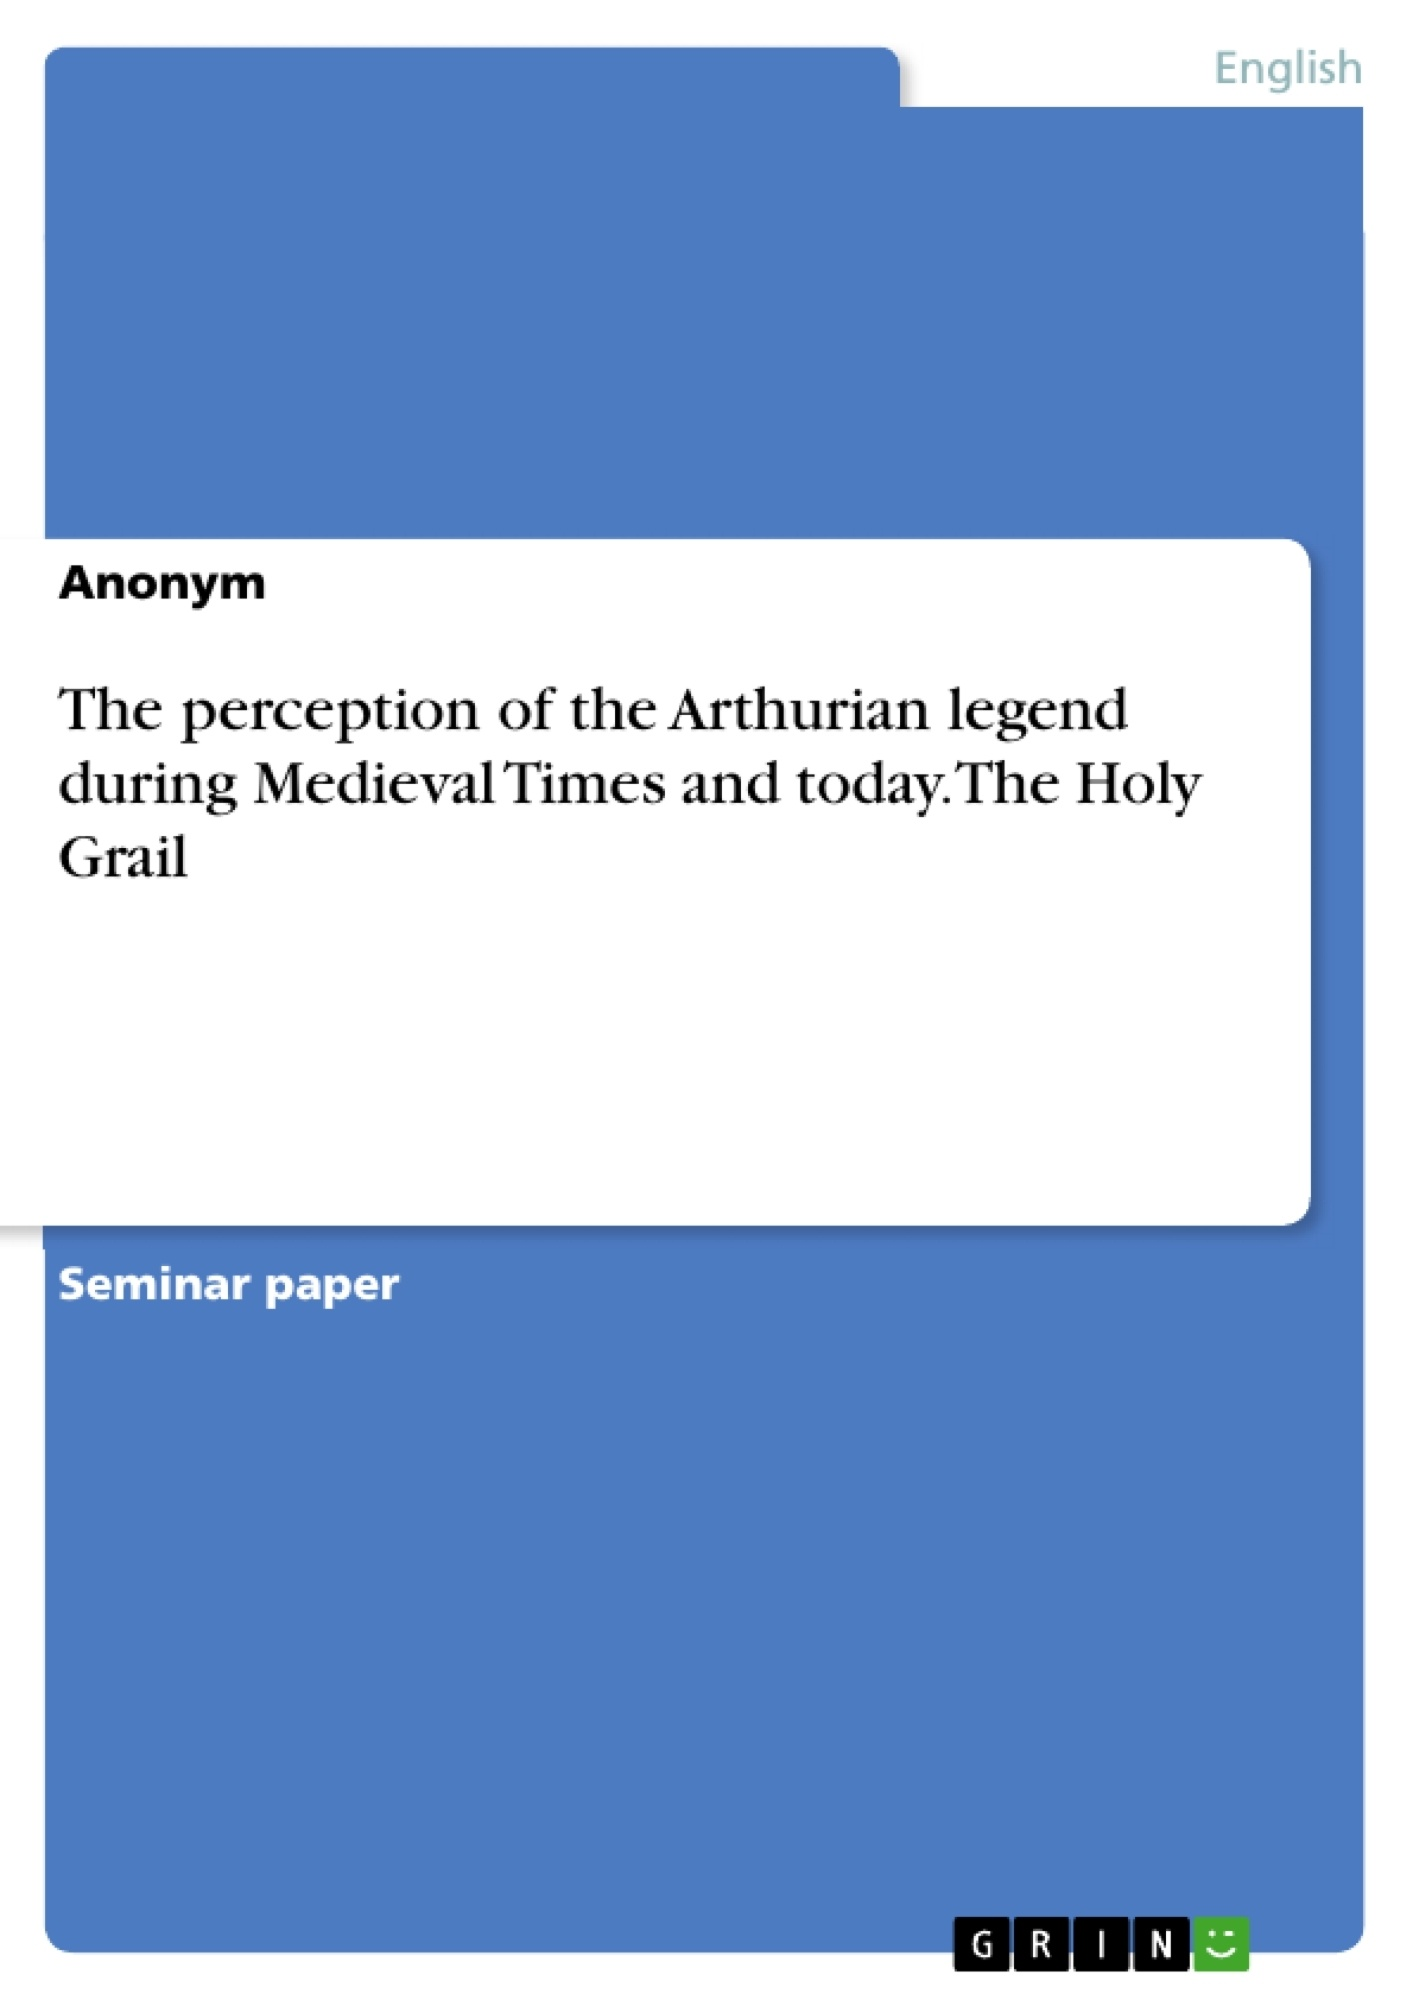 Title: The perception of the Arthurian legend during Medieval Times and today. The Holy Grail